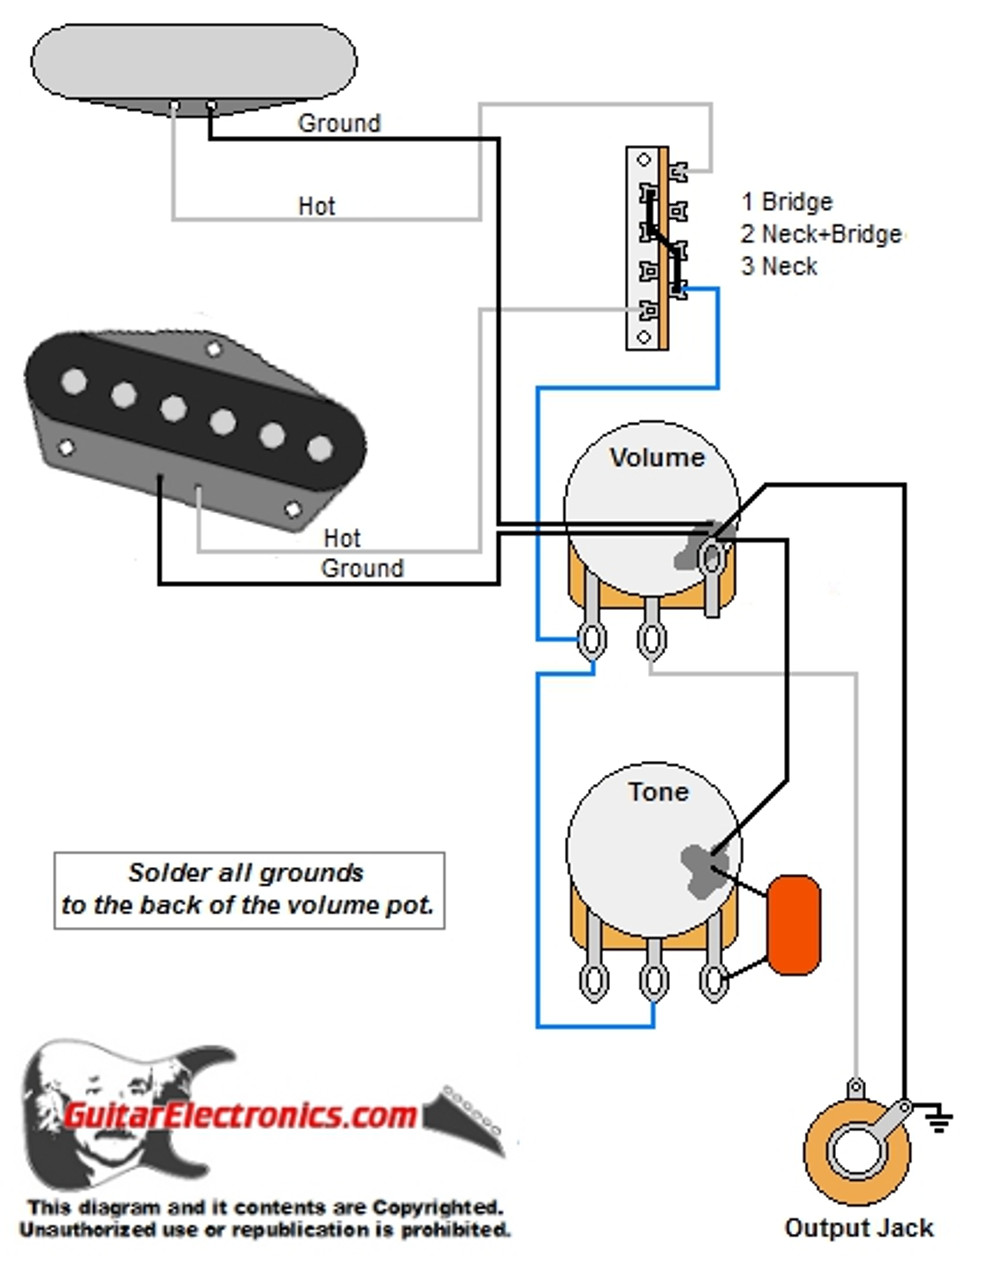 hight resolution of telecaster wiring diagram wiring diagrams mytele style guitar wiring diagram telecaster wiring diagram seymour duncan telecaster